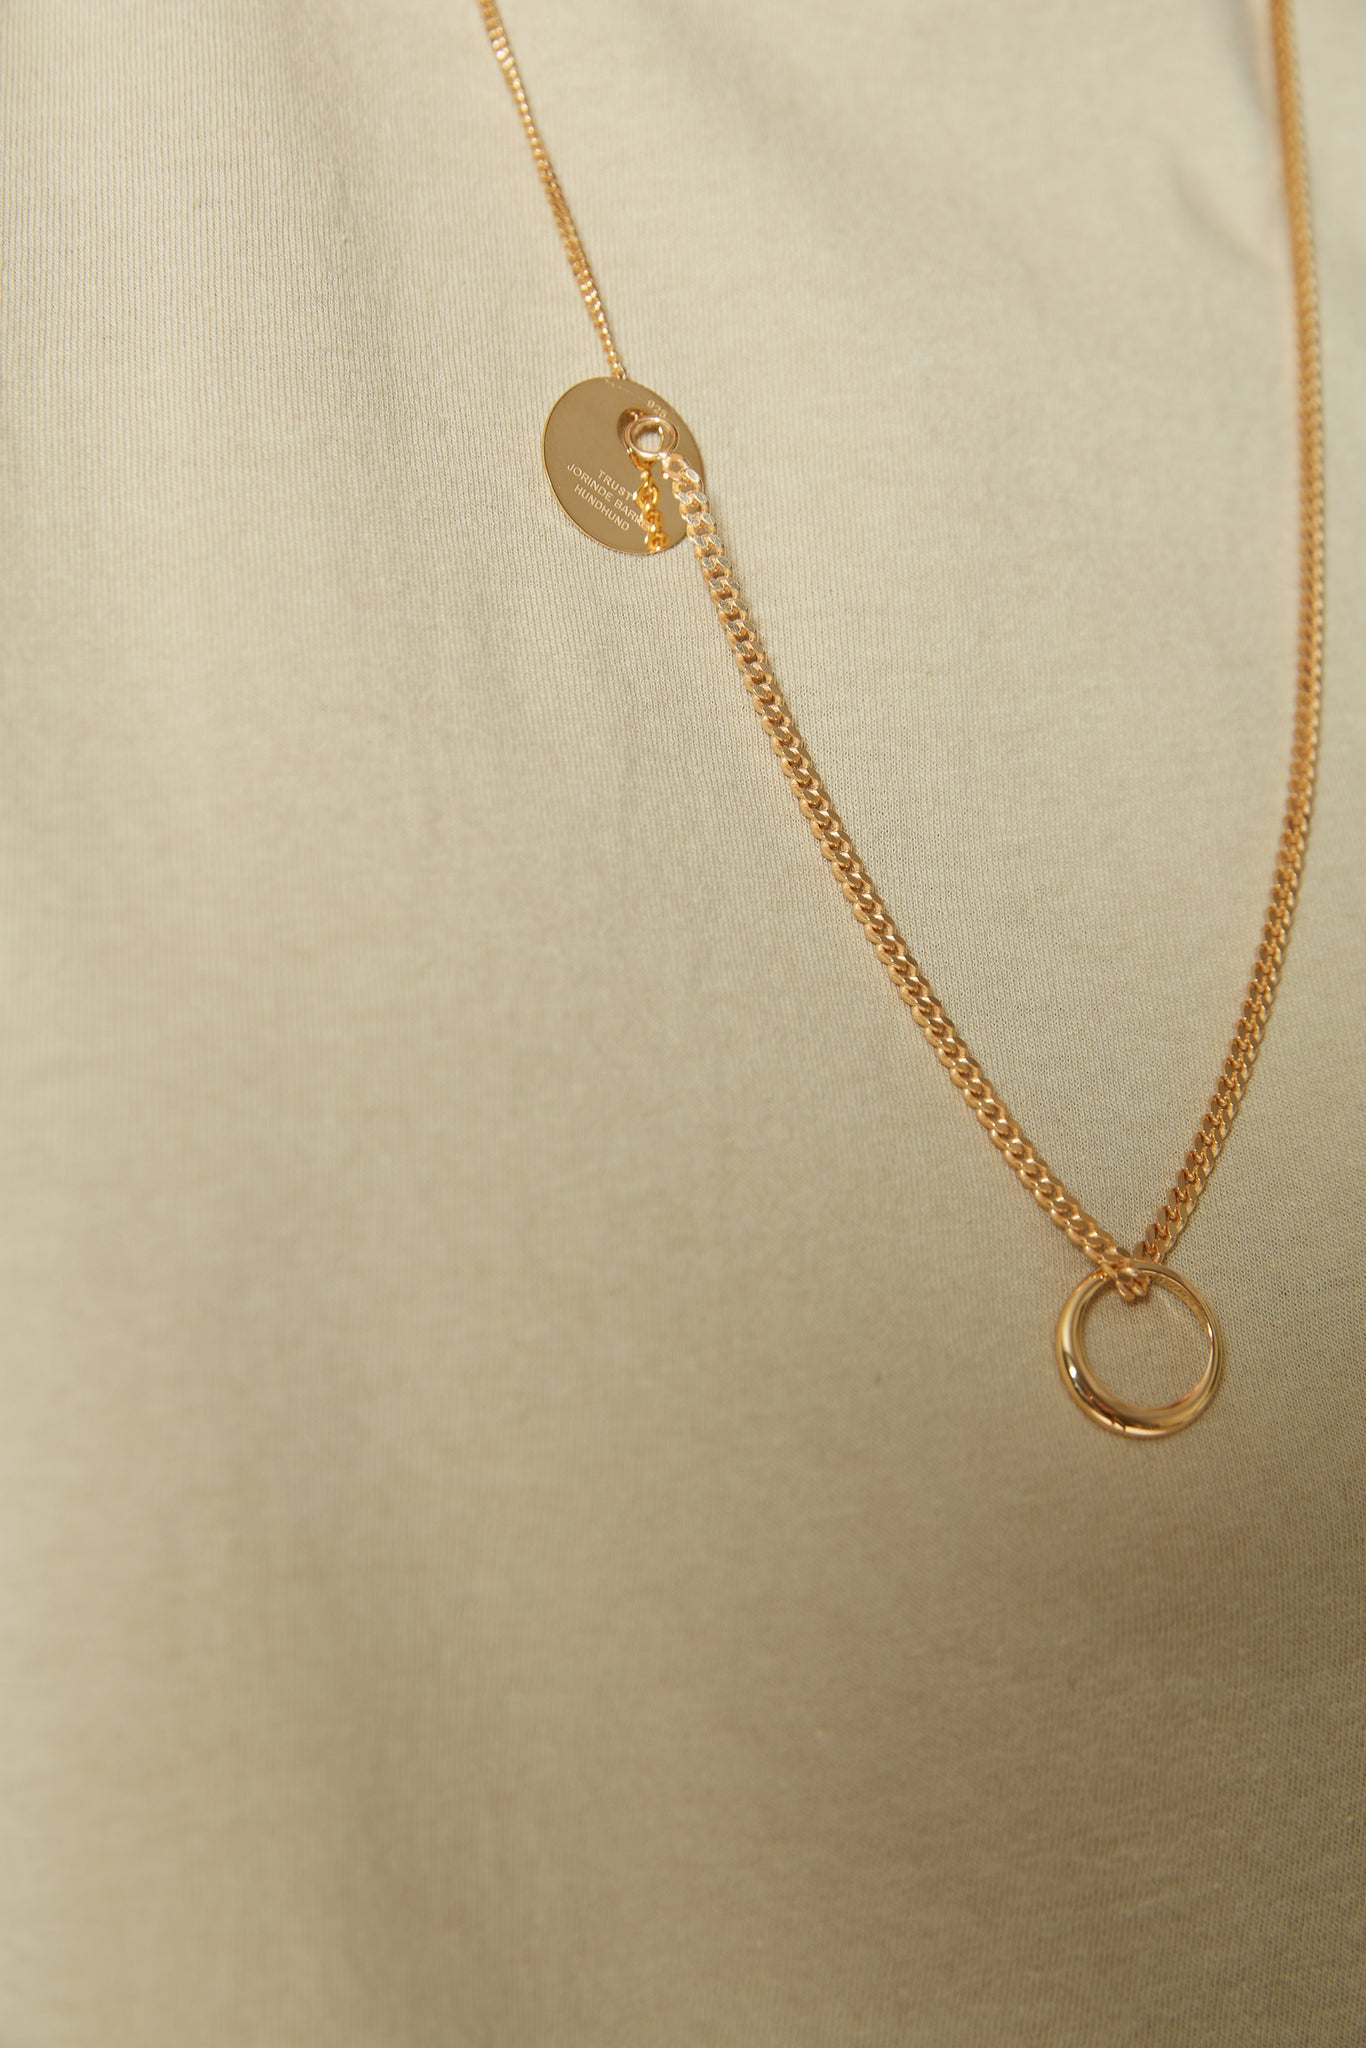 TRUST Necklace yellowgold